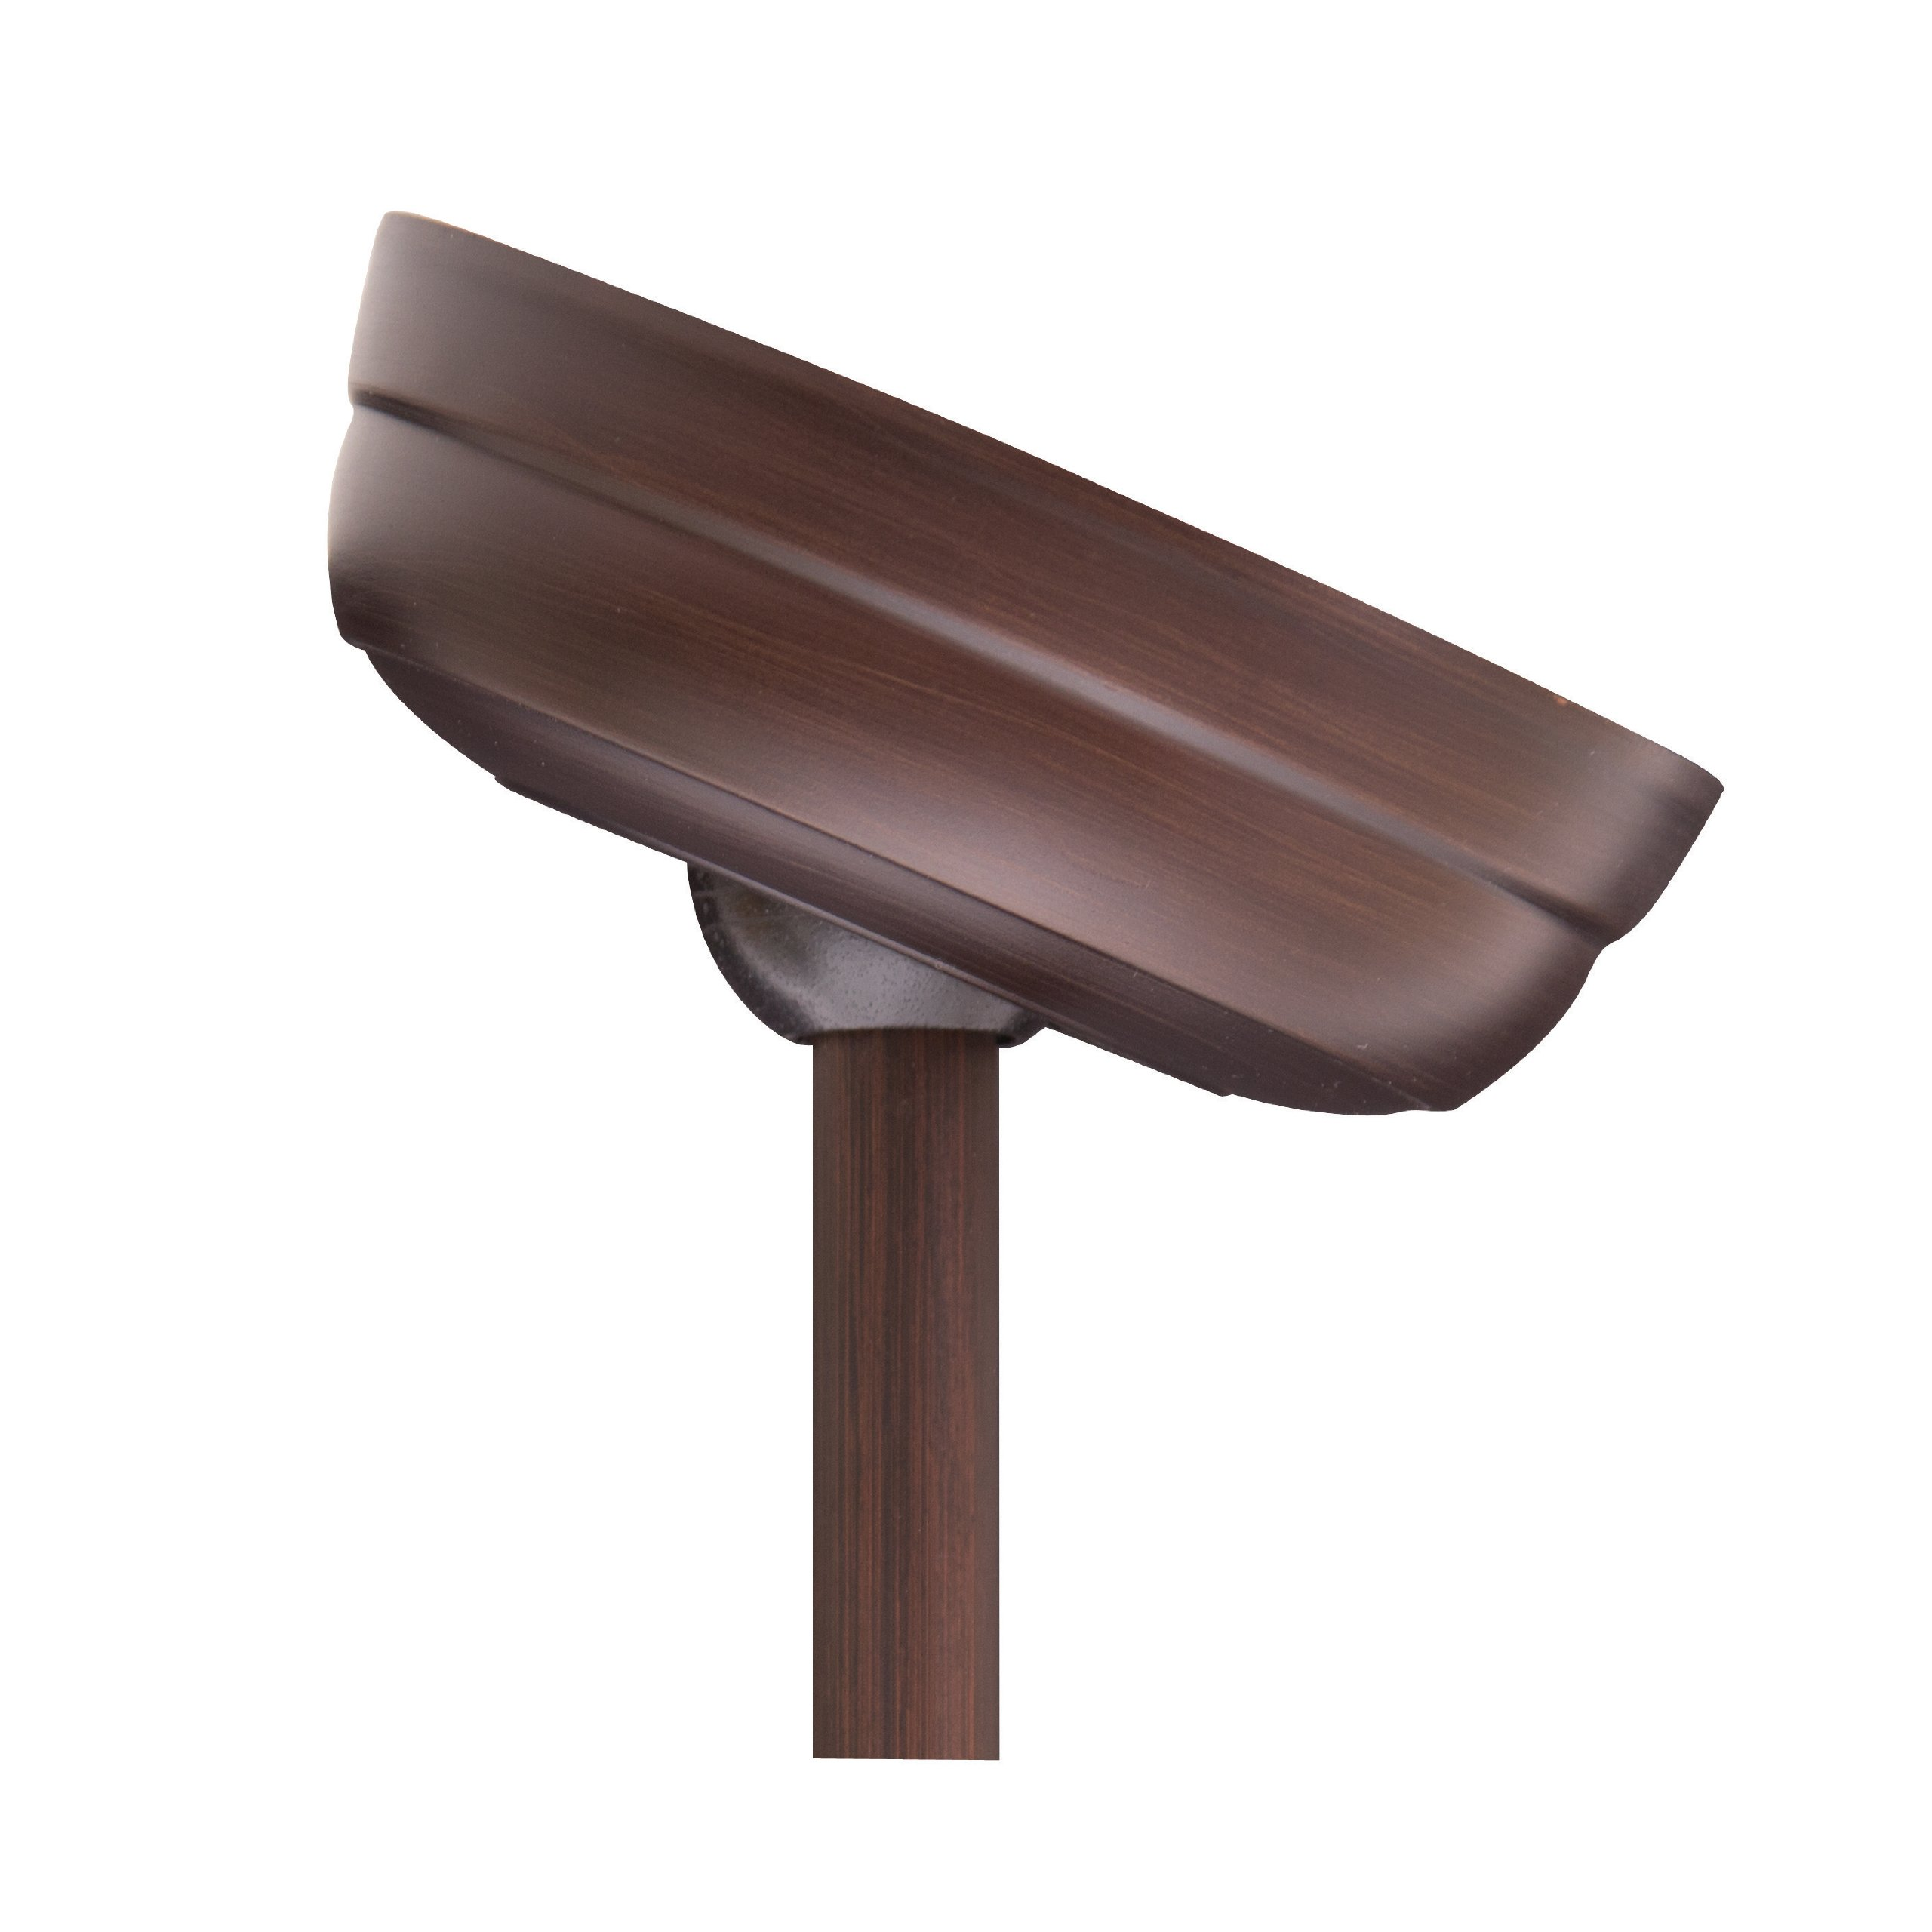 Emerson Ceiling Fans CFSCKORB Sloped Ceiling Kit, Vaulted Ceiling Fan Mount, Oil Rubbed Bronze by Emerson